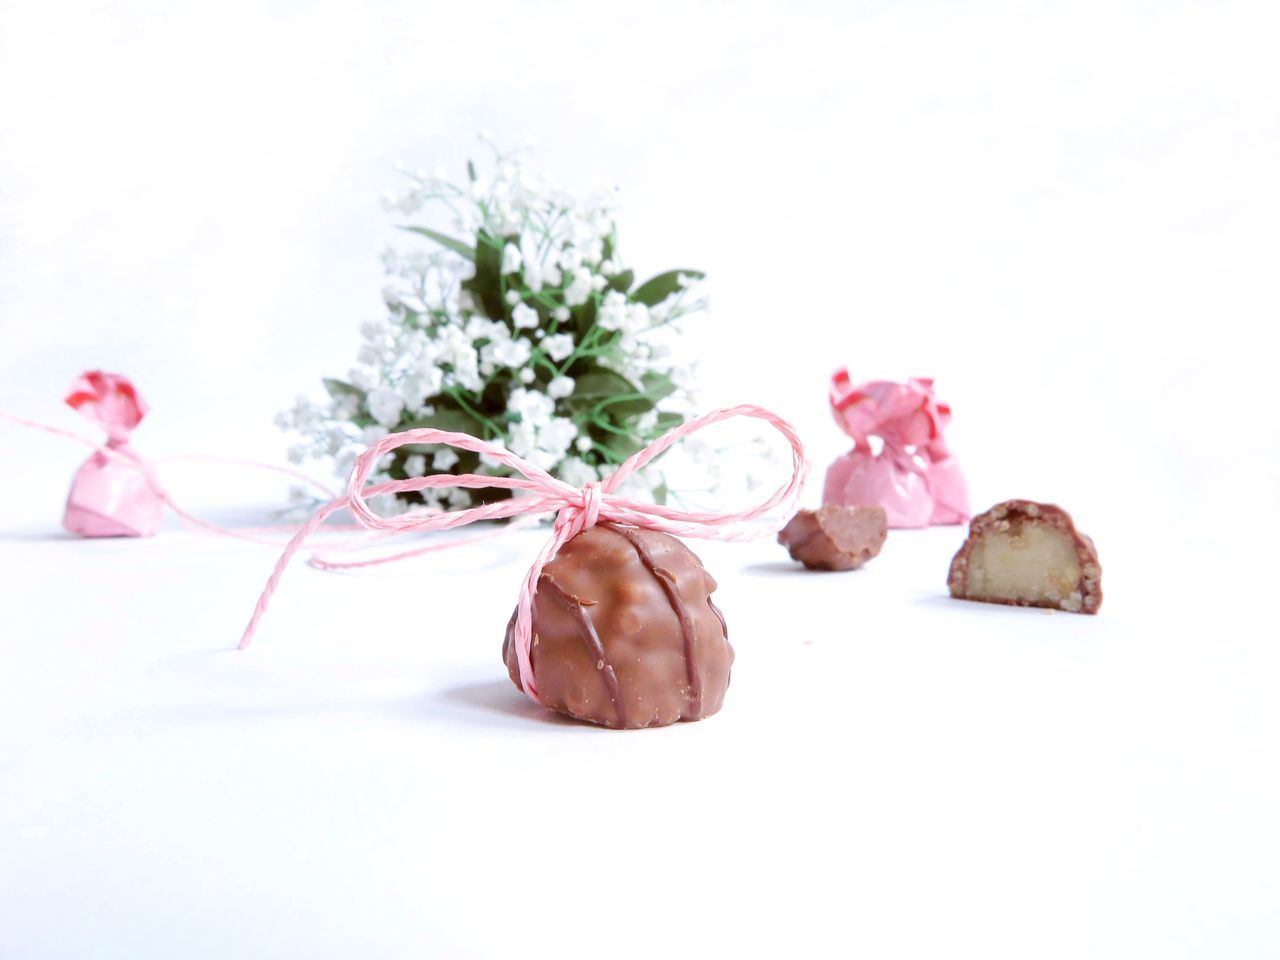 Beauty In Nature Chocolate Close-up Day Flower Flower Arrangement Flower Head Food Fragility Freshness Gift Indoors  Loop Nature No People Pink Praline Present Ready-to-eat Rosé Still Life Studio Shot Sweet Sweets White Background